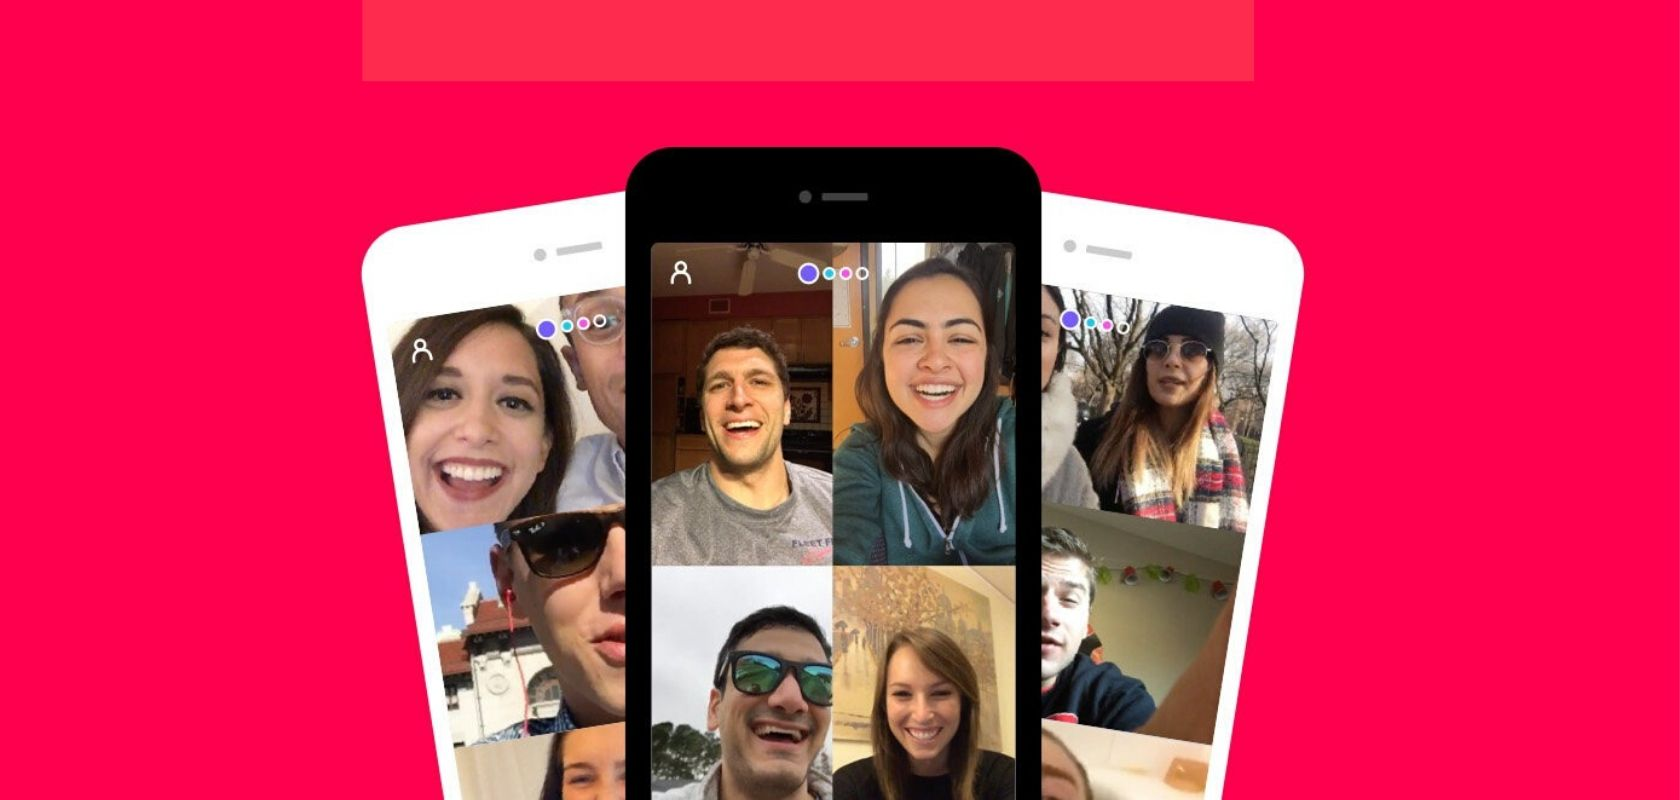 Epic offers $1m reward for evidence of Houseparty smear campaign - GamesIndustry.biz